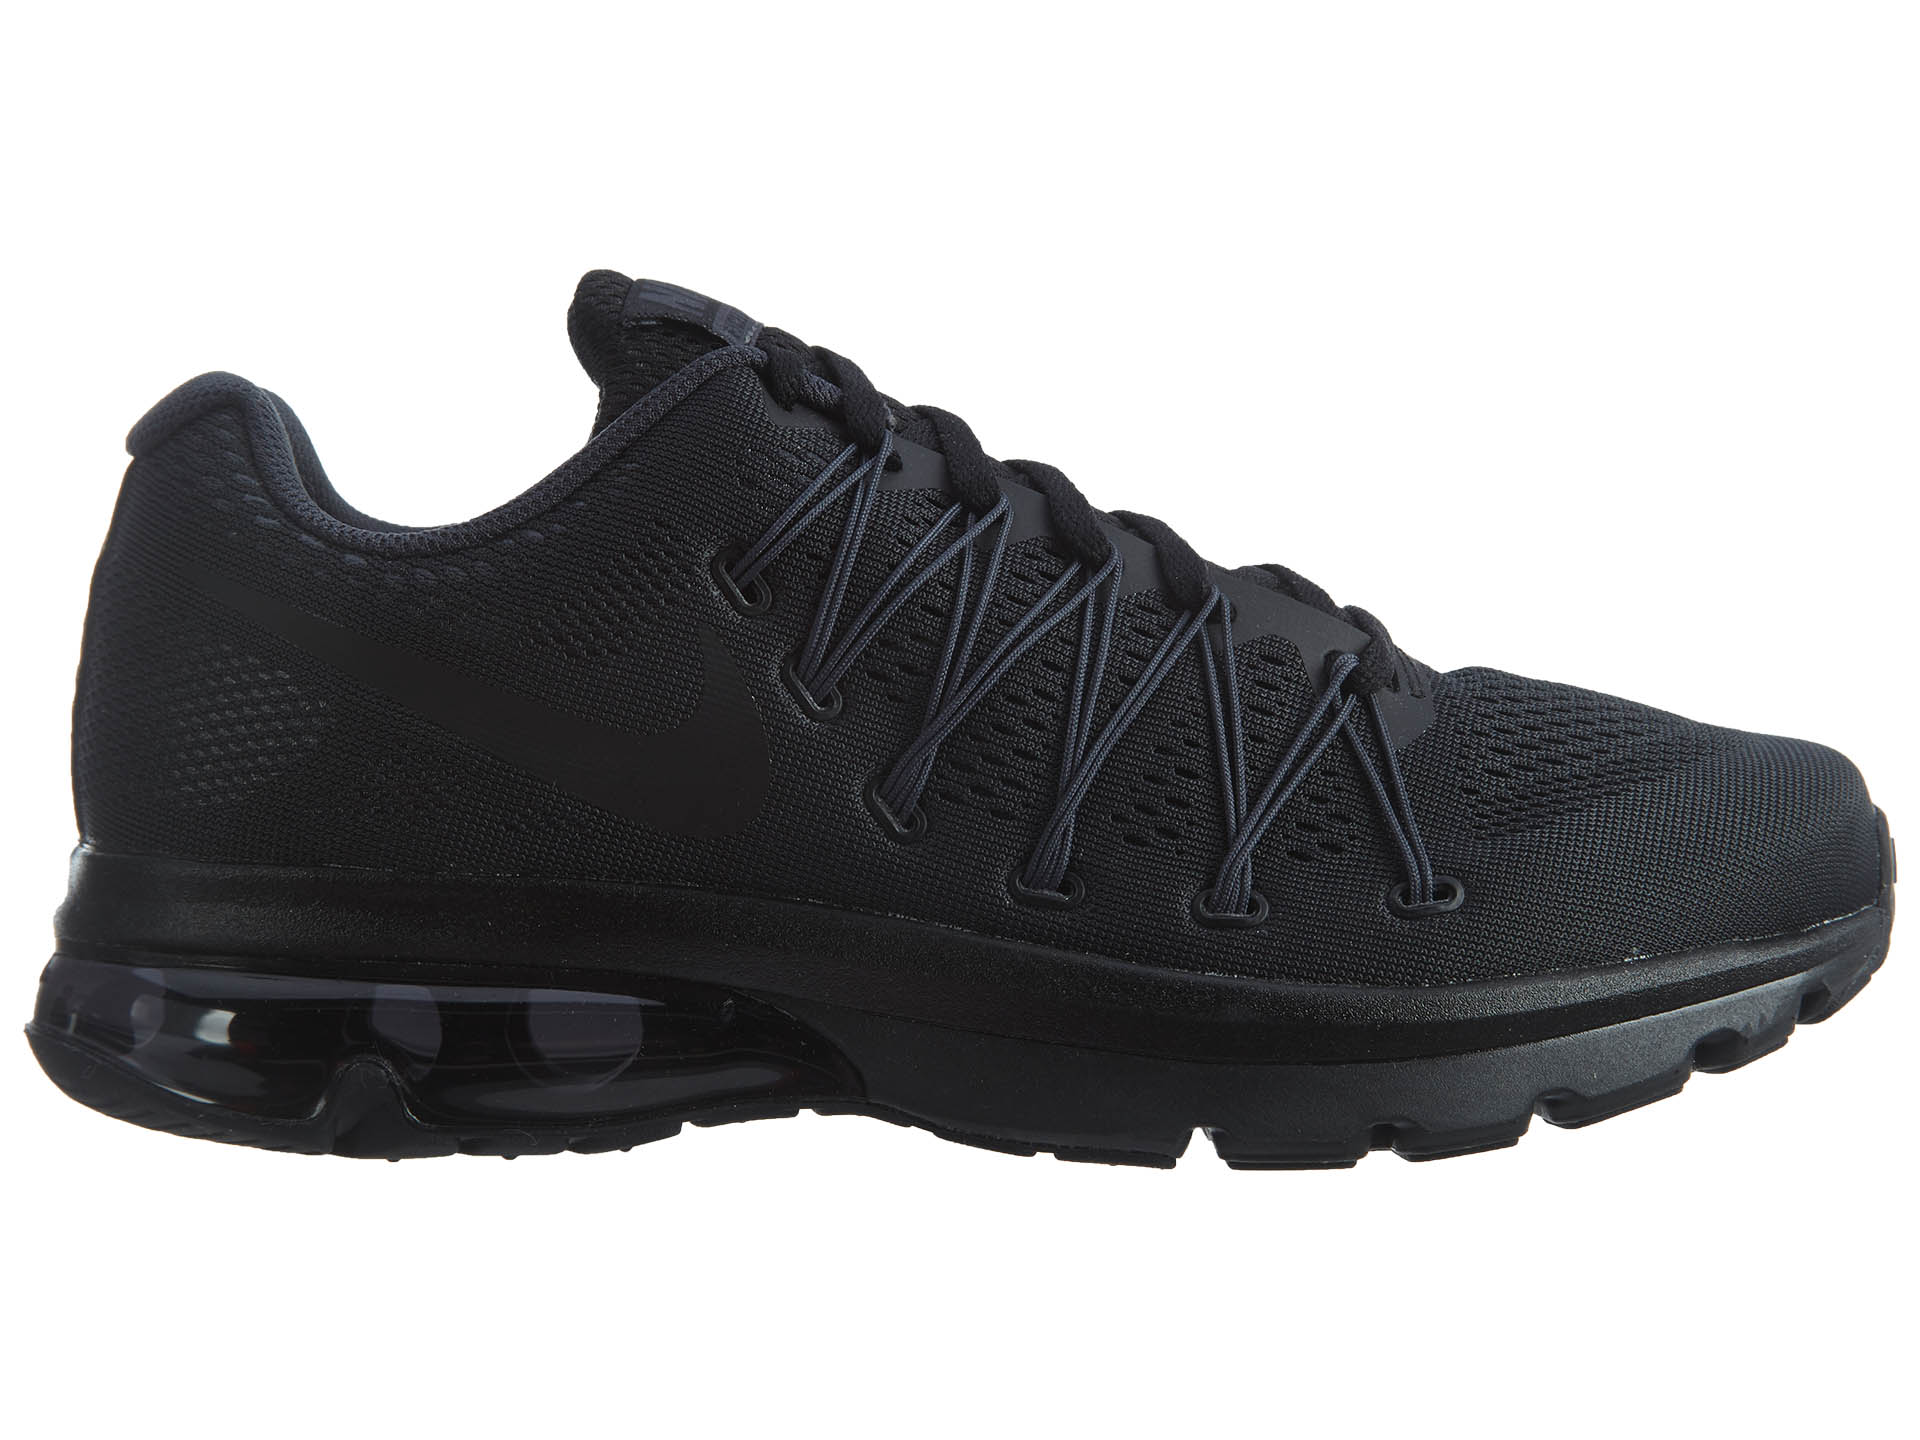 66b5e67bbff ... coupon code for air max excellerate 5 black black anthracite 3e6c6 818bf